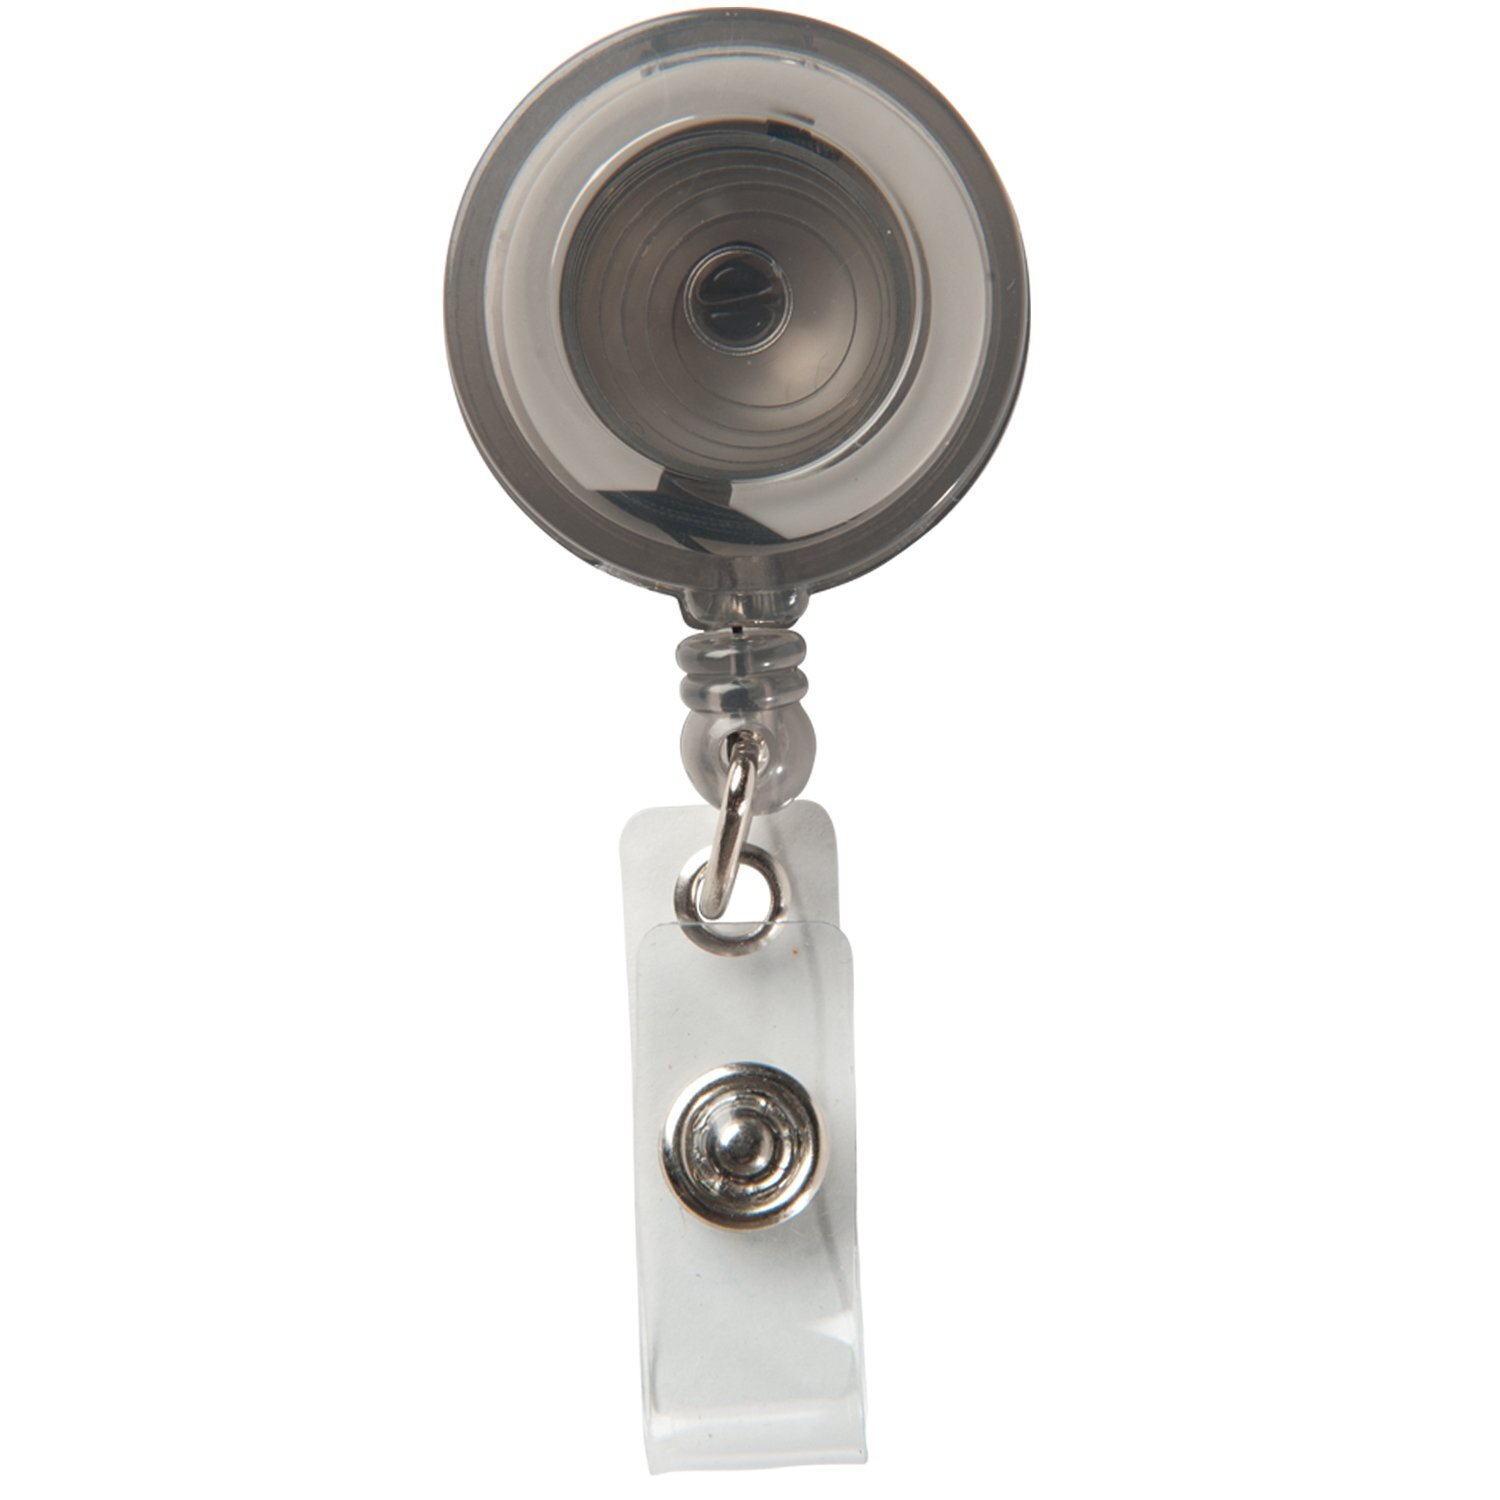 Economy Retractable Badgeholder, Slide Clip